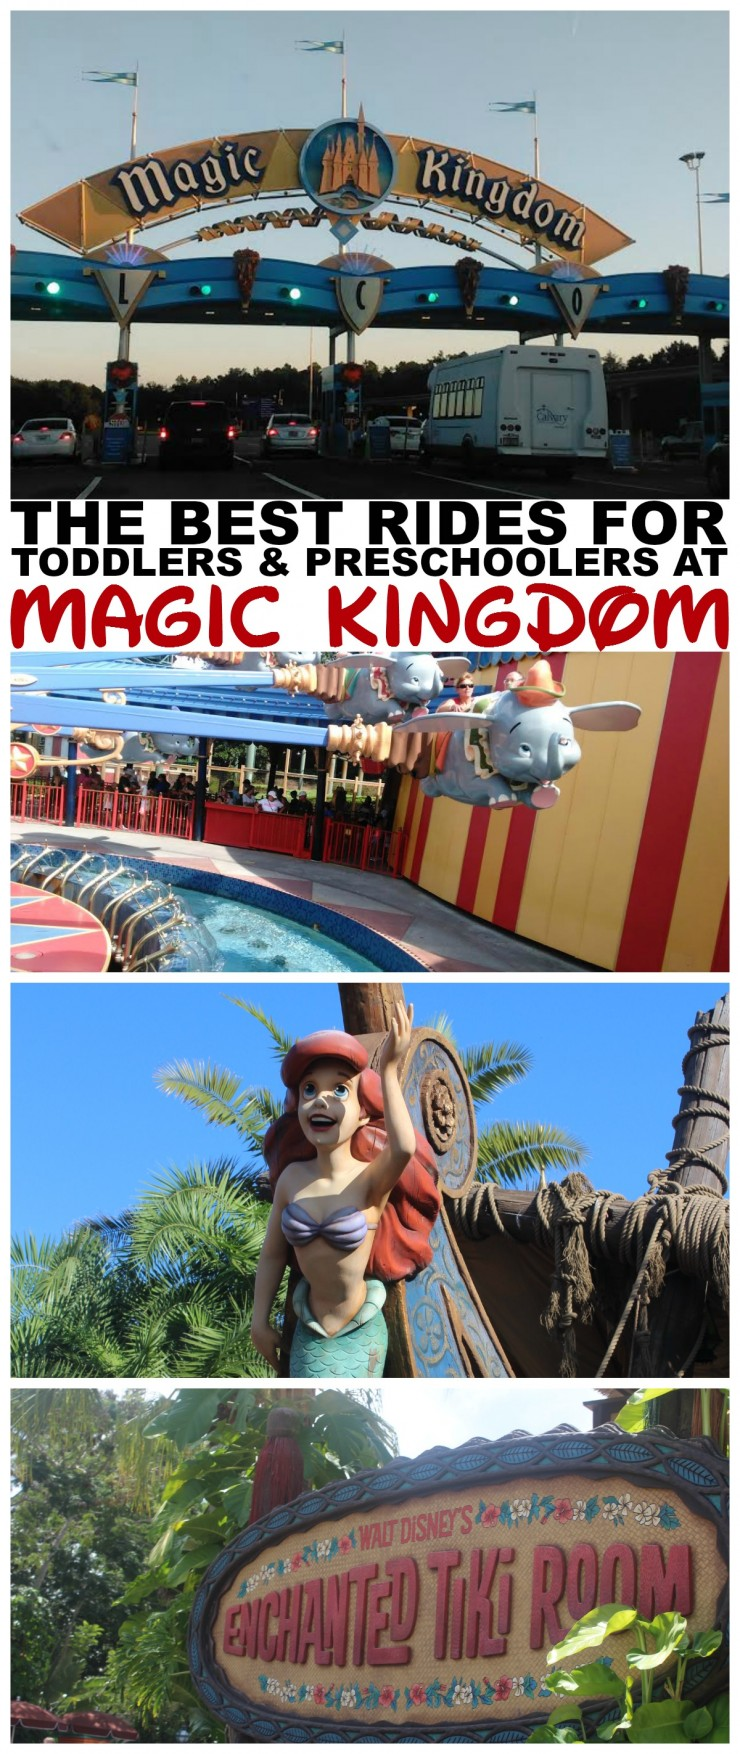 The Best Rides & Attractions for Toddlers and Preschoolers at Magic Kingdom